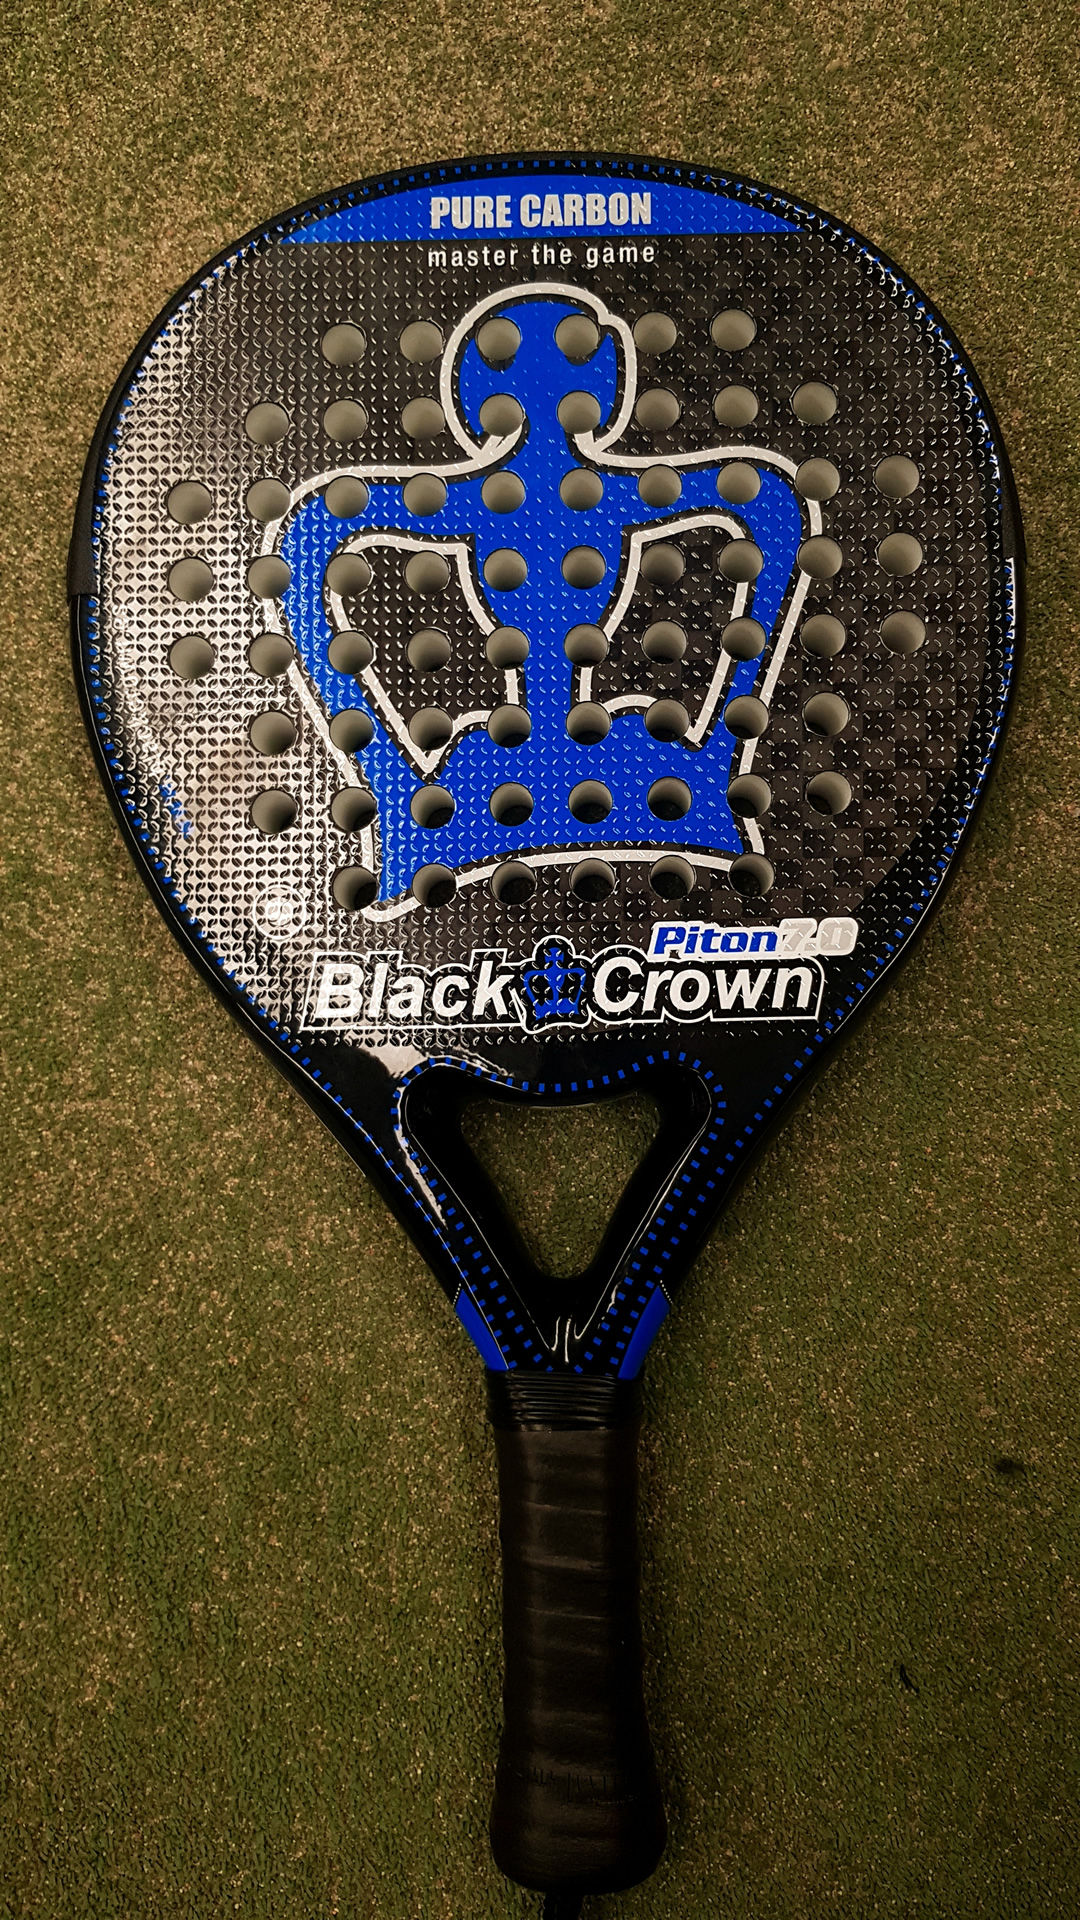 Black Crown piton 7.0